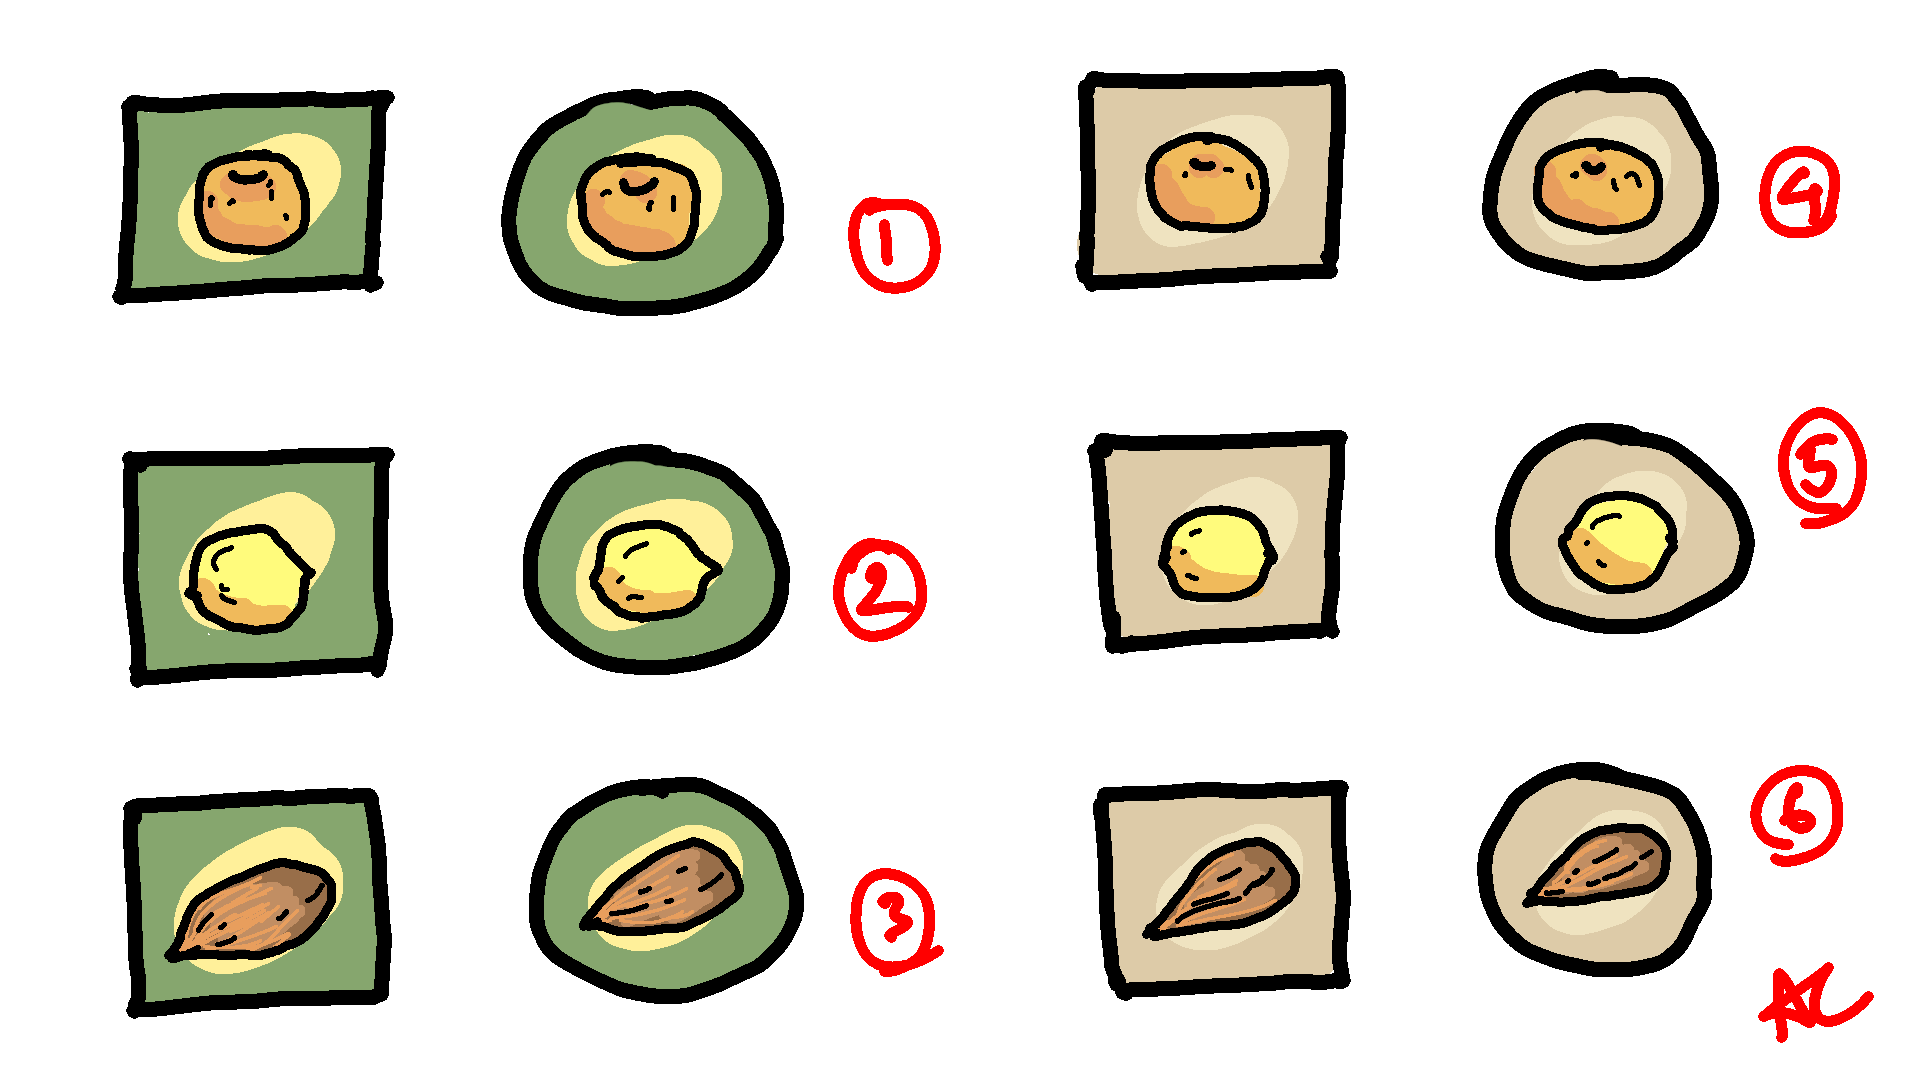 004_TestIcons.png